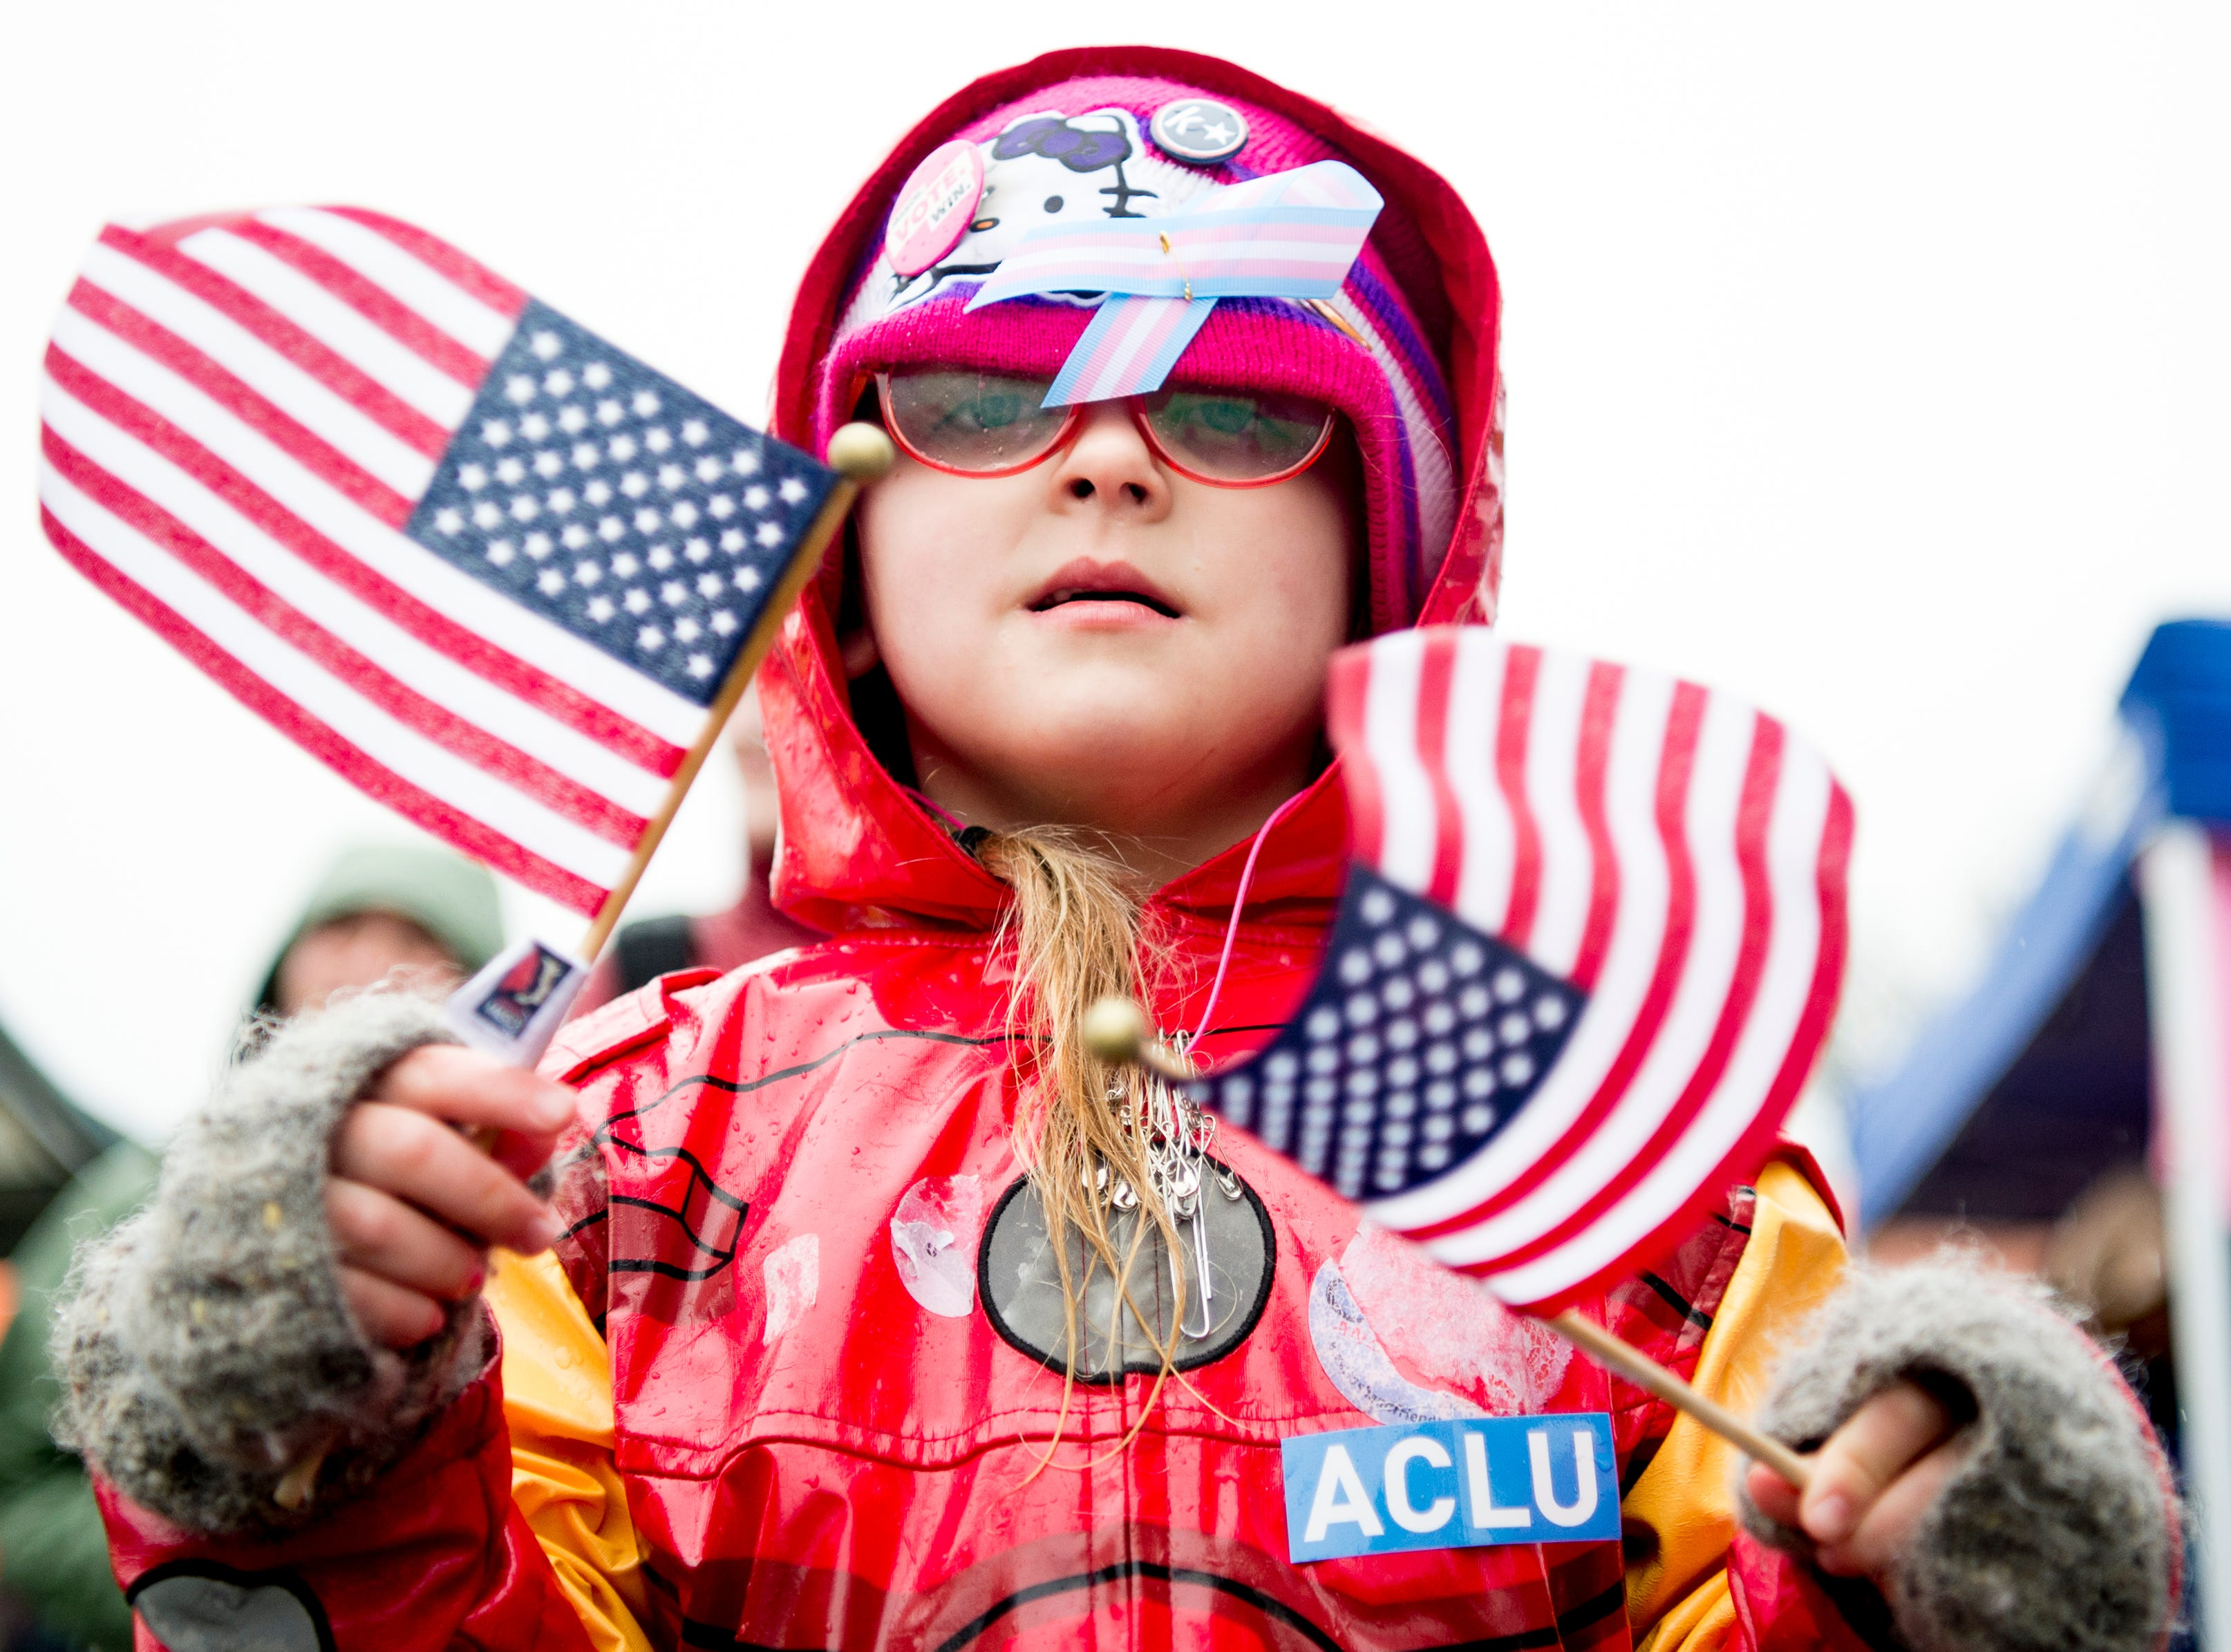 A young demonstrator waves American flags at the 2019 Knoxville Women's March at Chilhowee Park in Knoxville, Tennessee on Saturday, January 19, 2019.